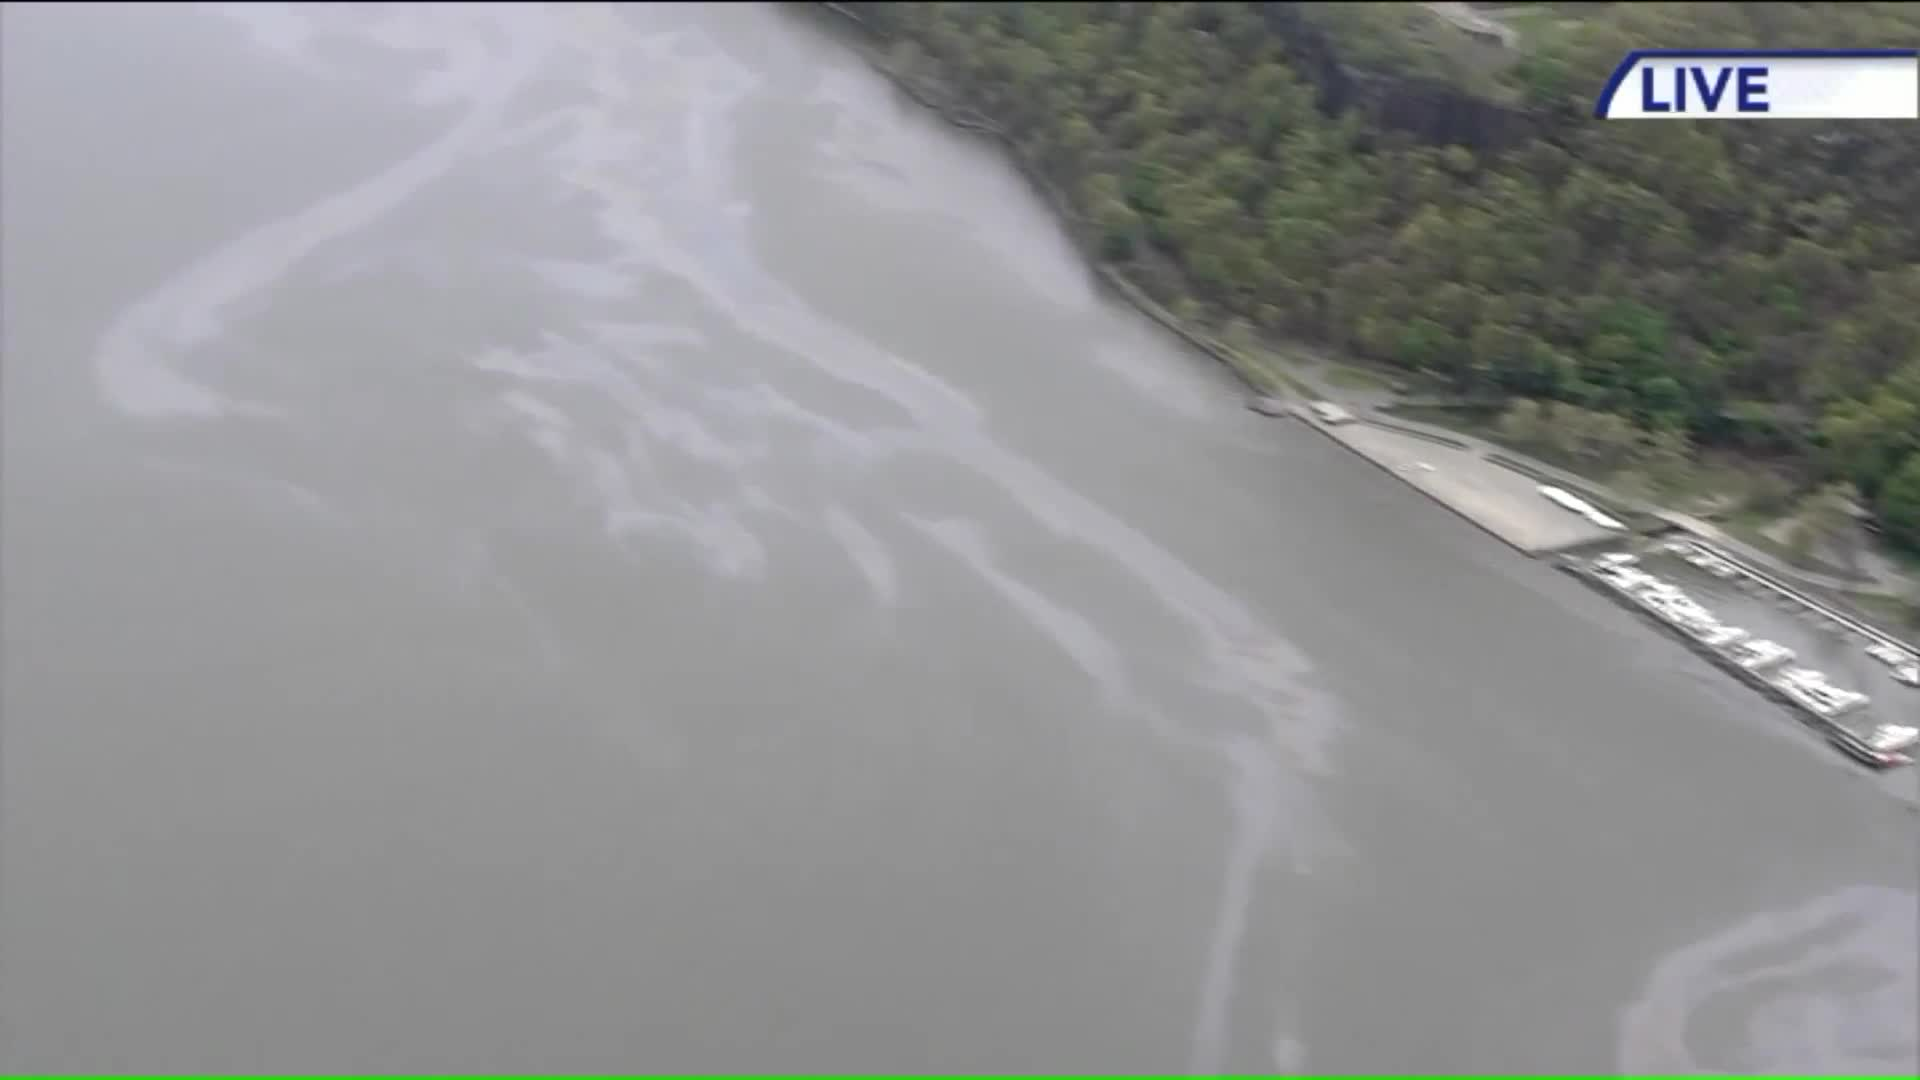 Oil Spill In Hudson River Being Investigated